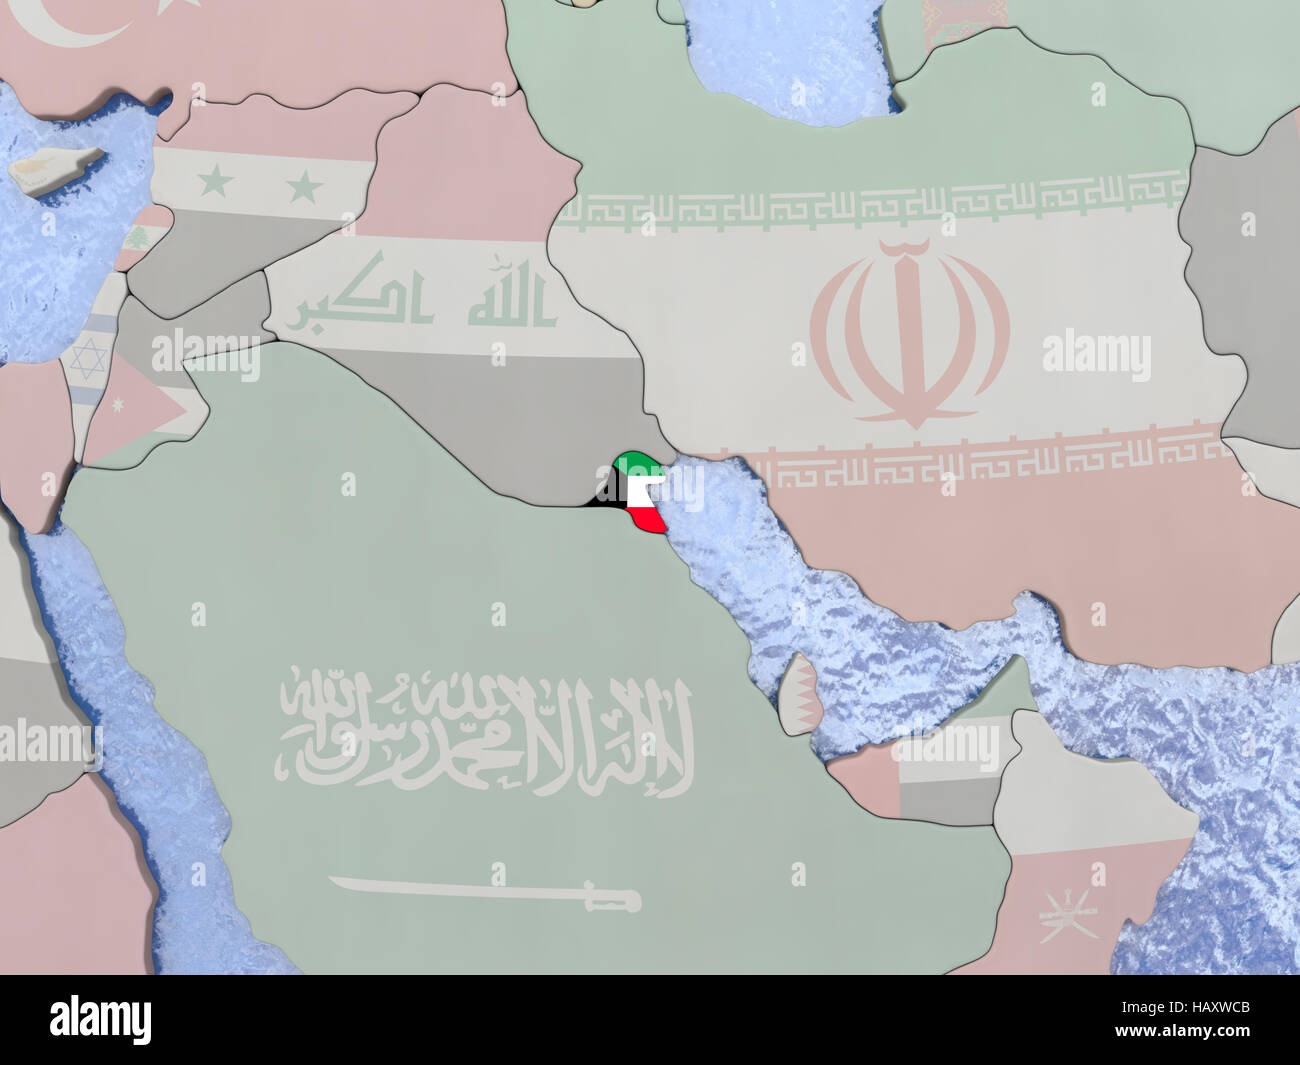 Map of Kuwait with national flag on political globe with realistic Kuwait Location On World Map on kuwait oil map, kuwait oil fields, kuwait position on world map, kuwait region map, kuwait map outline, kuwait islands on map, kuwait natural resources map, saudi arabia on world map, safat kuwait map, yemen on world map, kuwait ocean caribbean, al jaber kuwait air base map, kuwait road map, kuwait religion map, ahmadi kuwait map, kuwait ports map, tasmania location map, kuwait on asia map, coral sea location on map, kuwait afghanistan map,